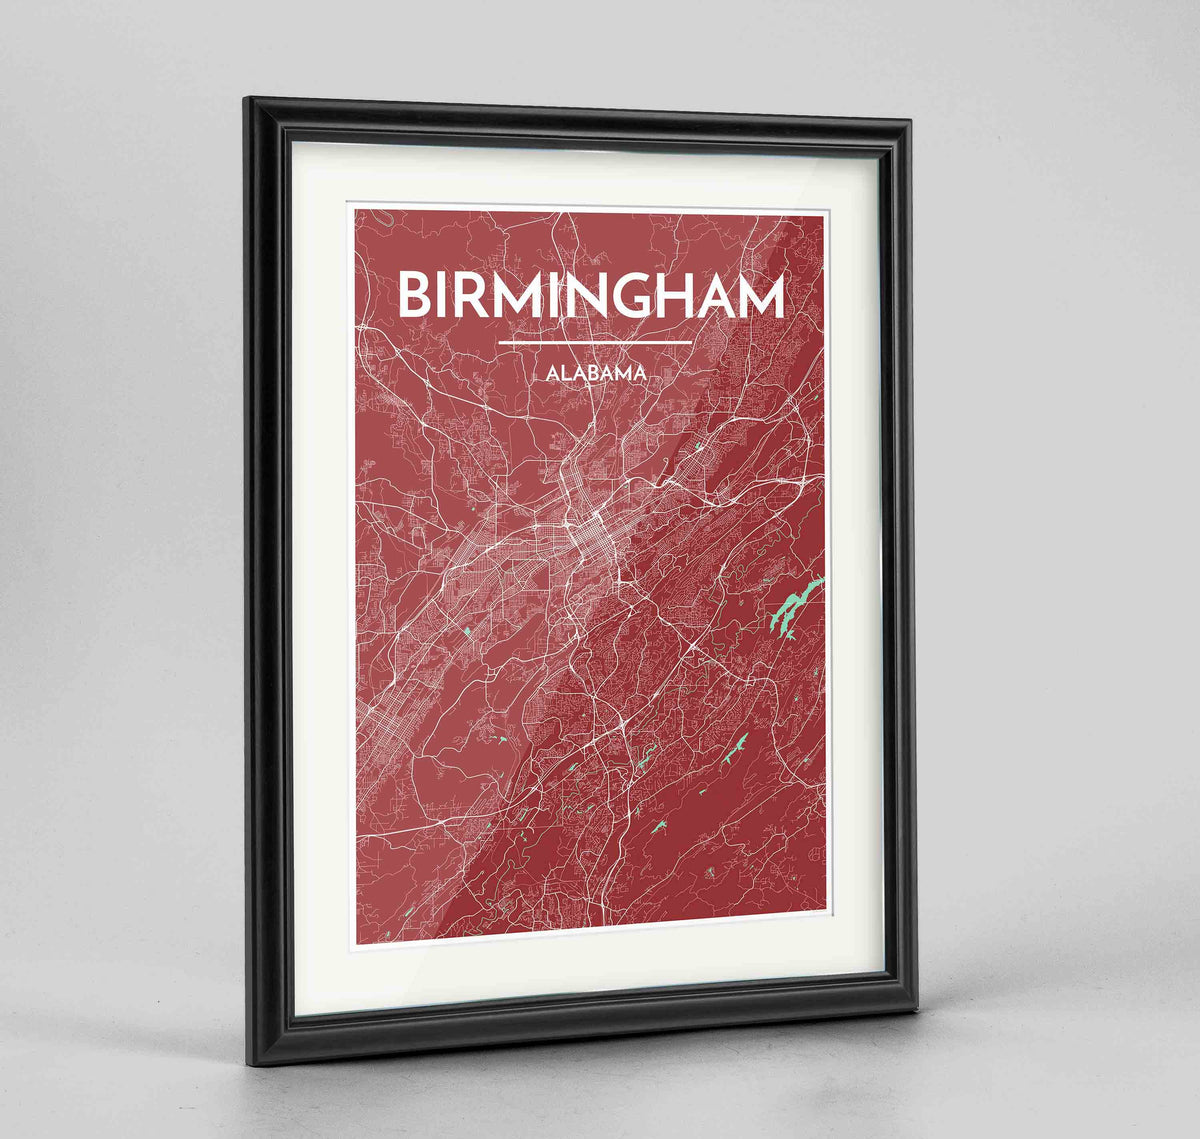 "Framed Birmingham - Alabama Map Art Print 24x36"" Traditional Black frame Point Two Design Group"